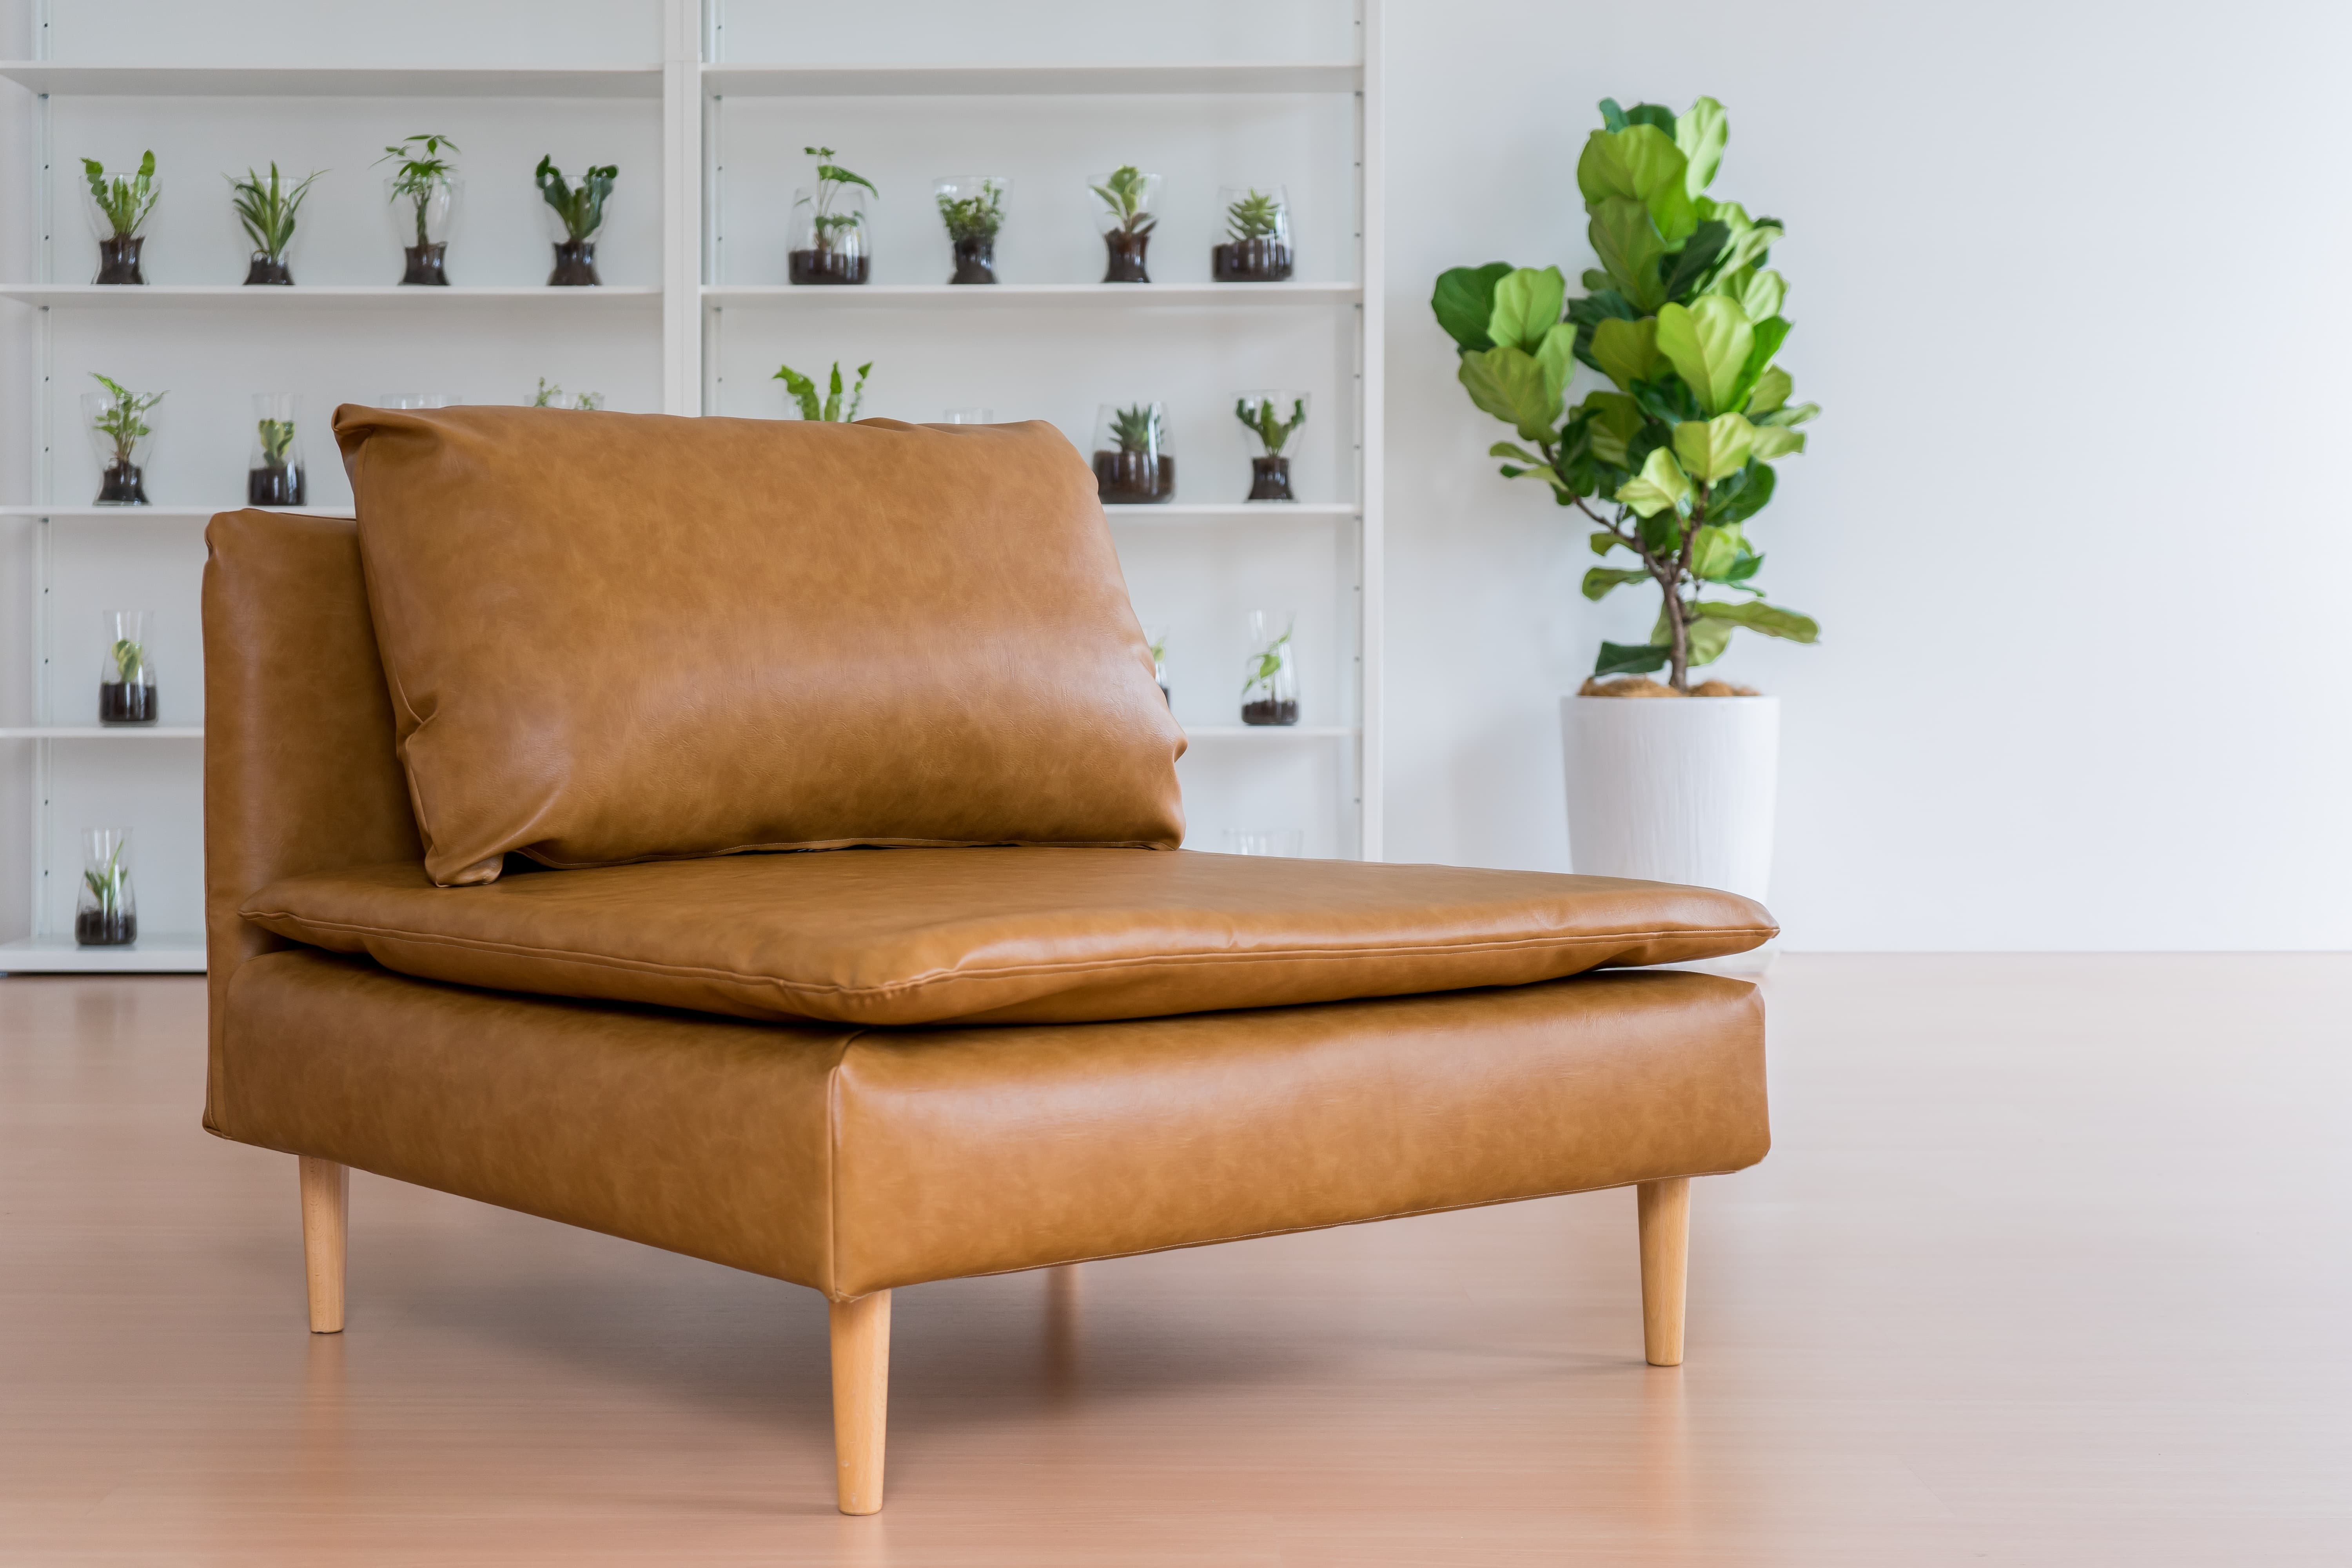 Soderhamn sofa covers in vegan tanned leather